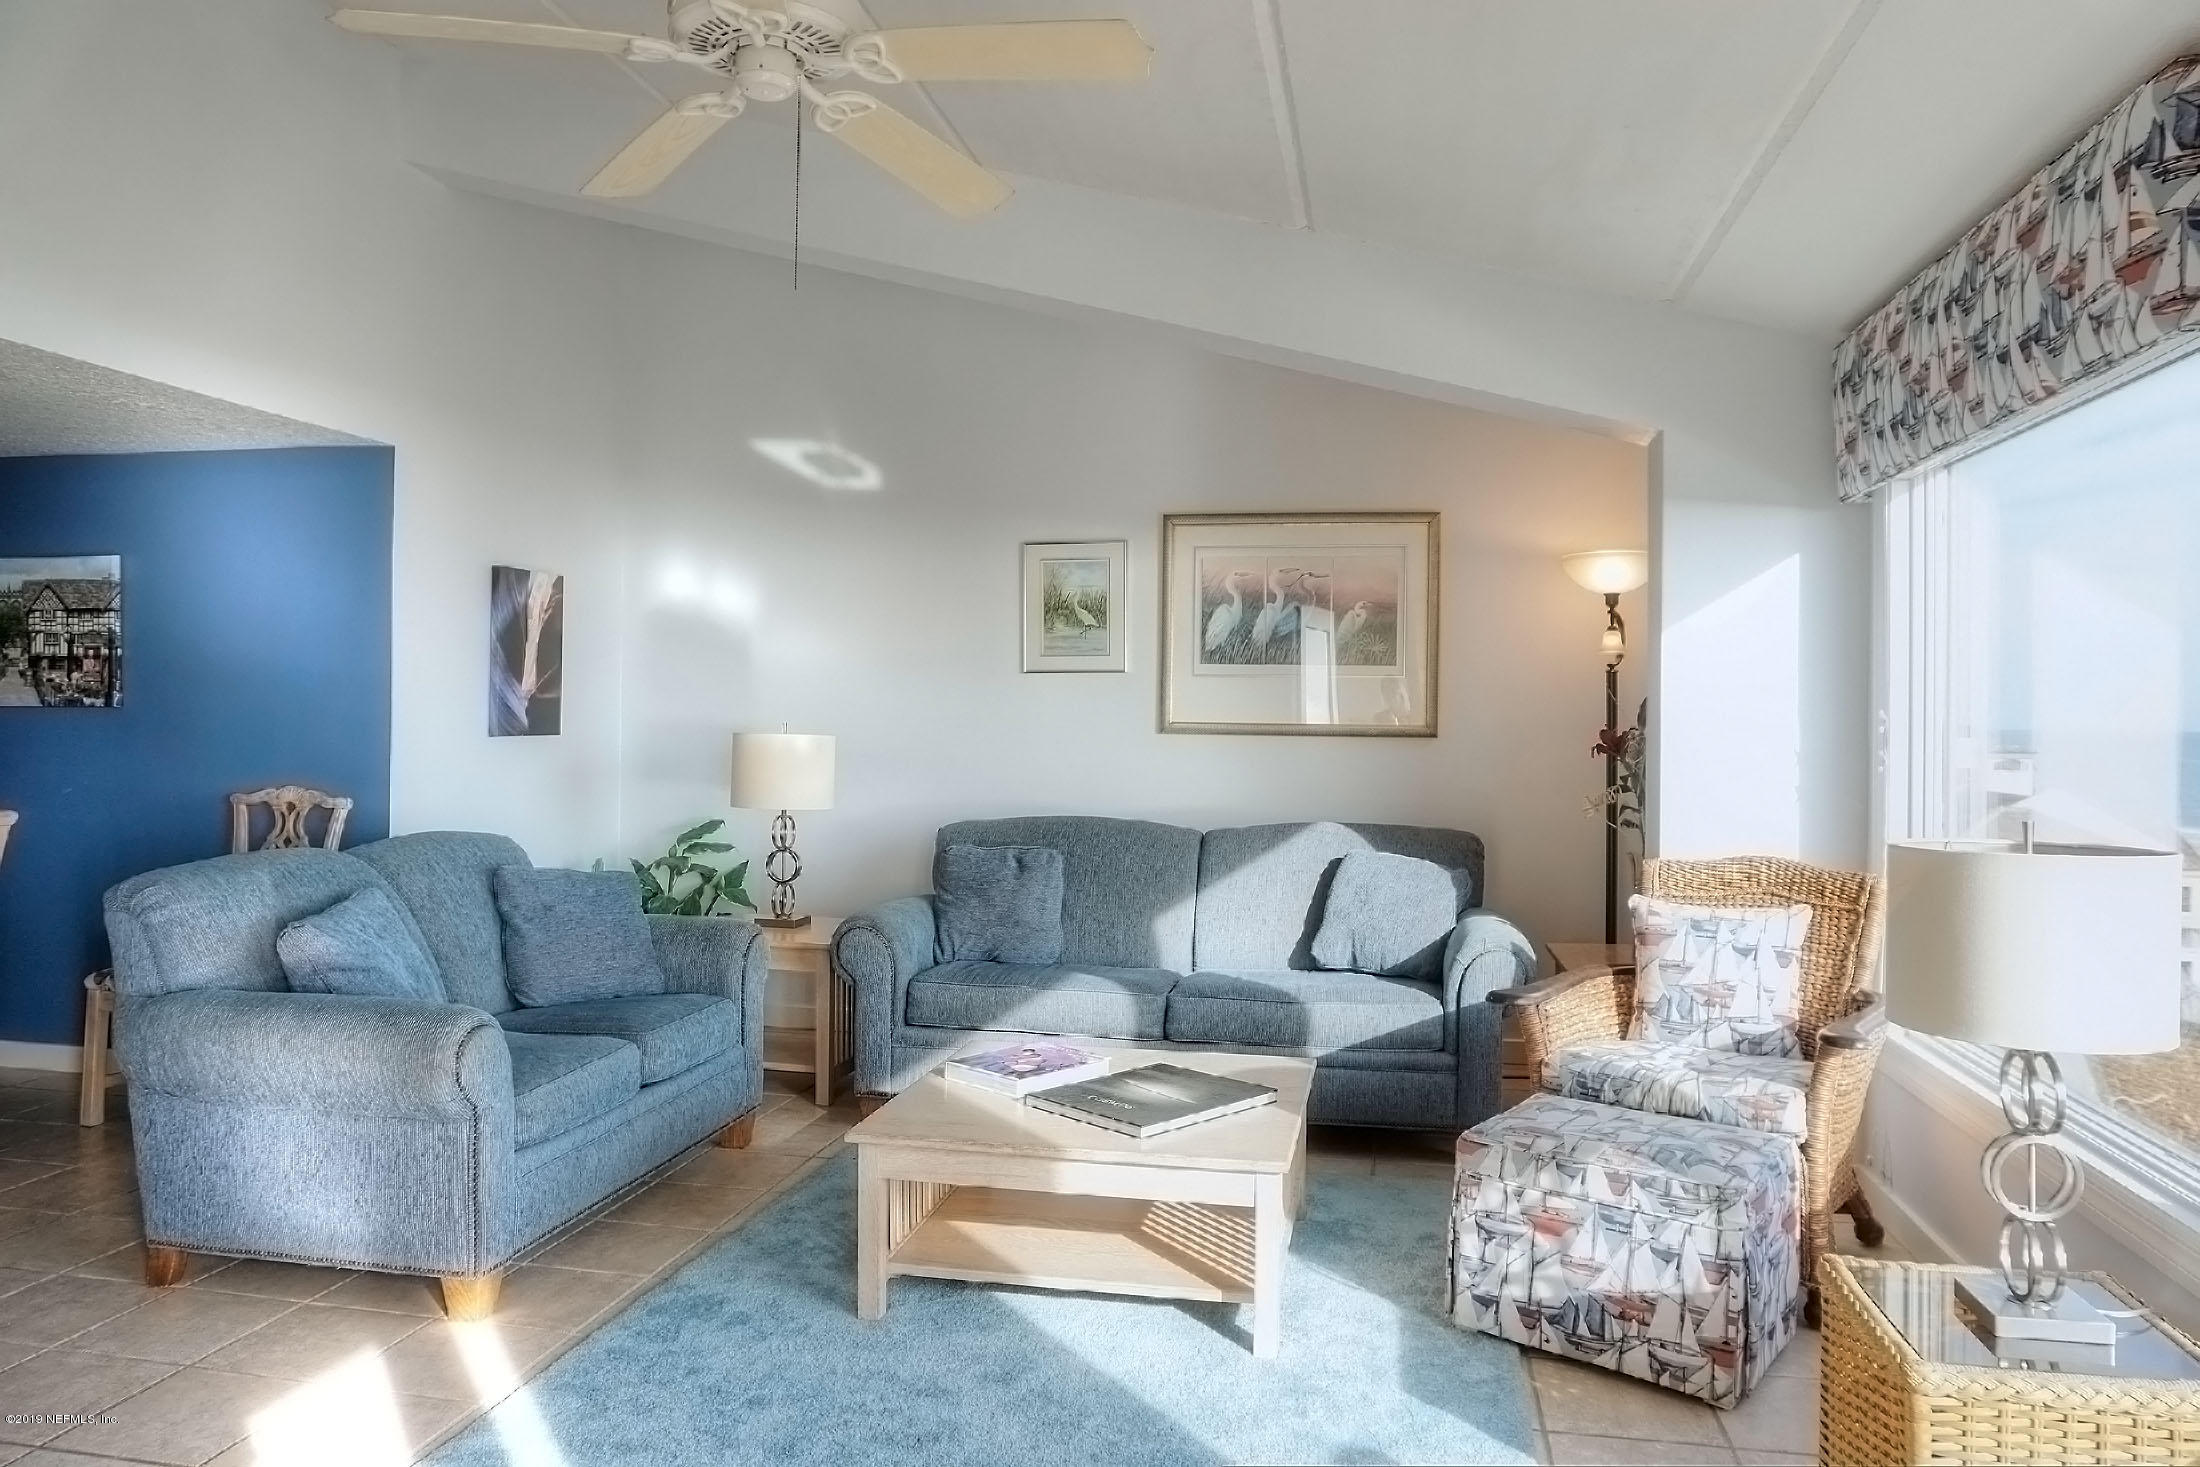 1374 SHIPWATCH, FERNANDINA BEACH, FLORIDA 32034, 2 Bedrooms Bedrooms, ,2 BathroomsBathrooms,Residential - condos/townhomes,For sale,SHIPWATCH,973541